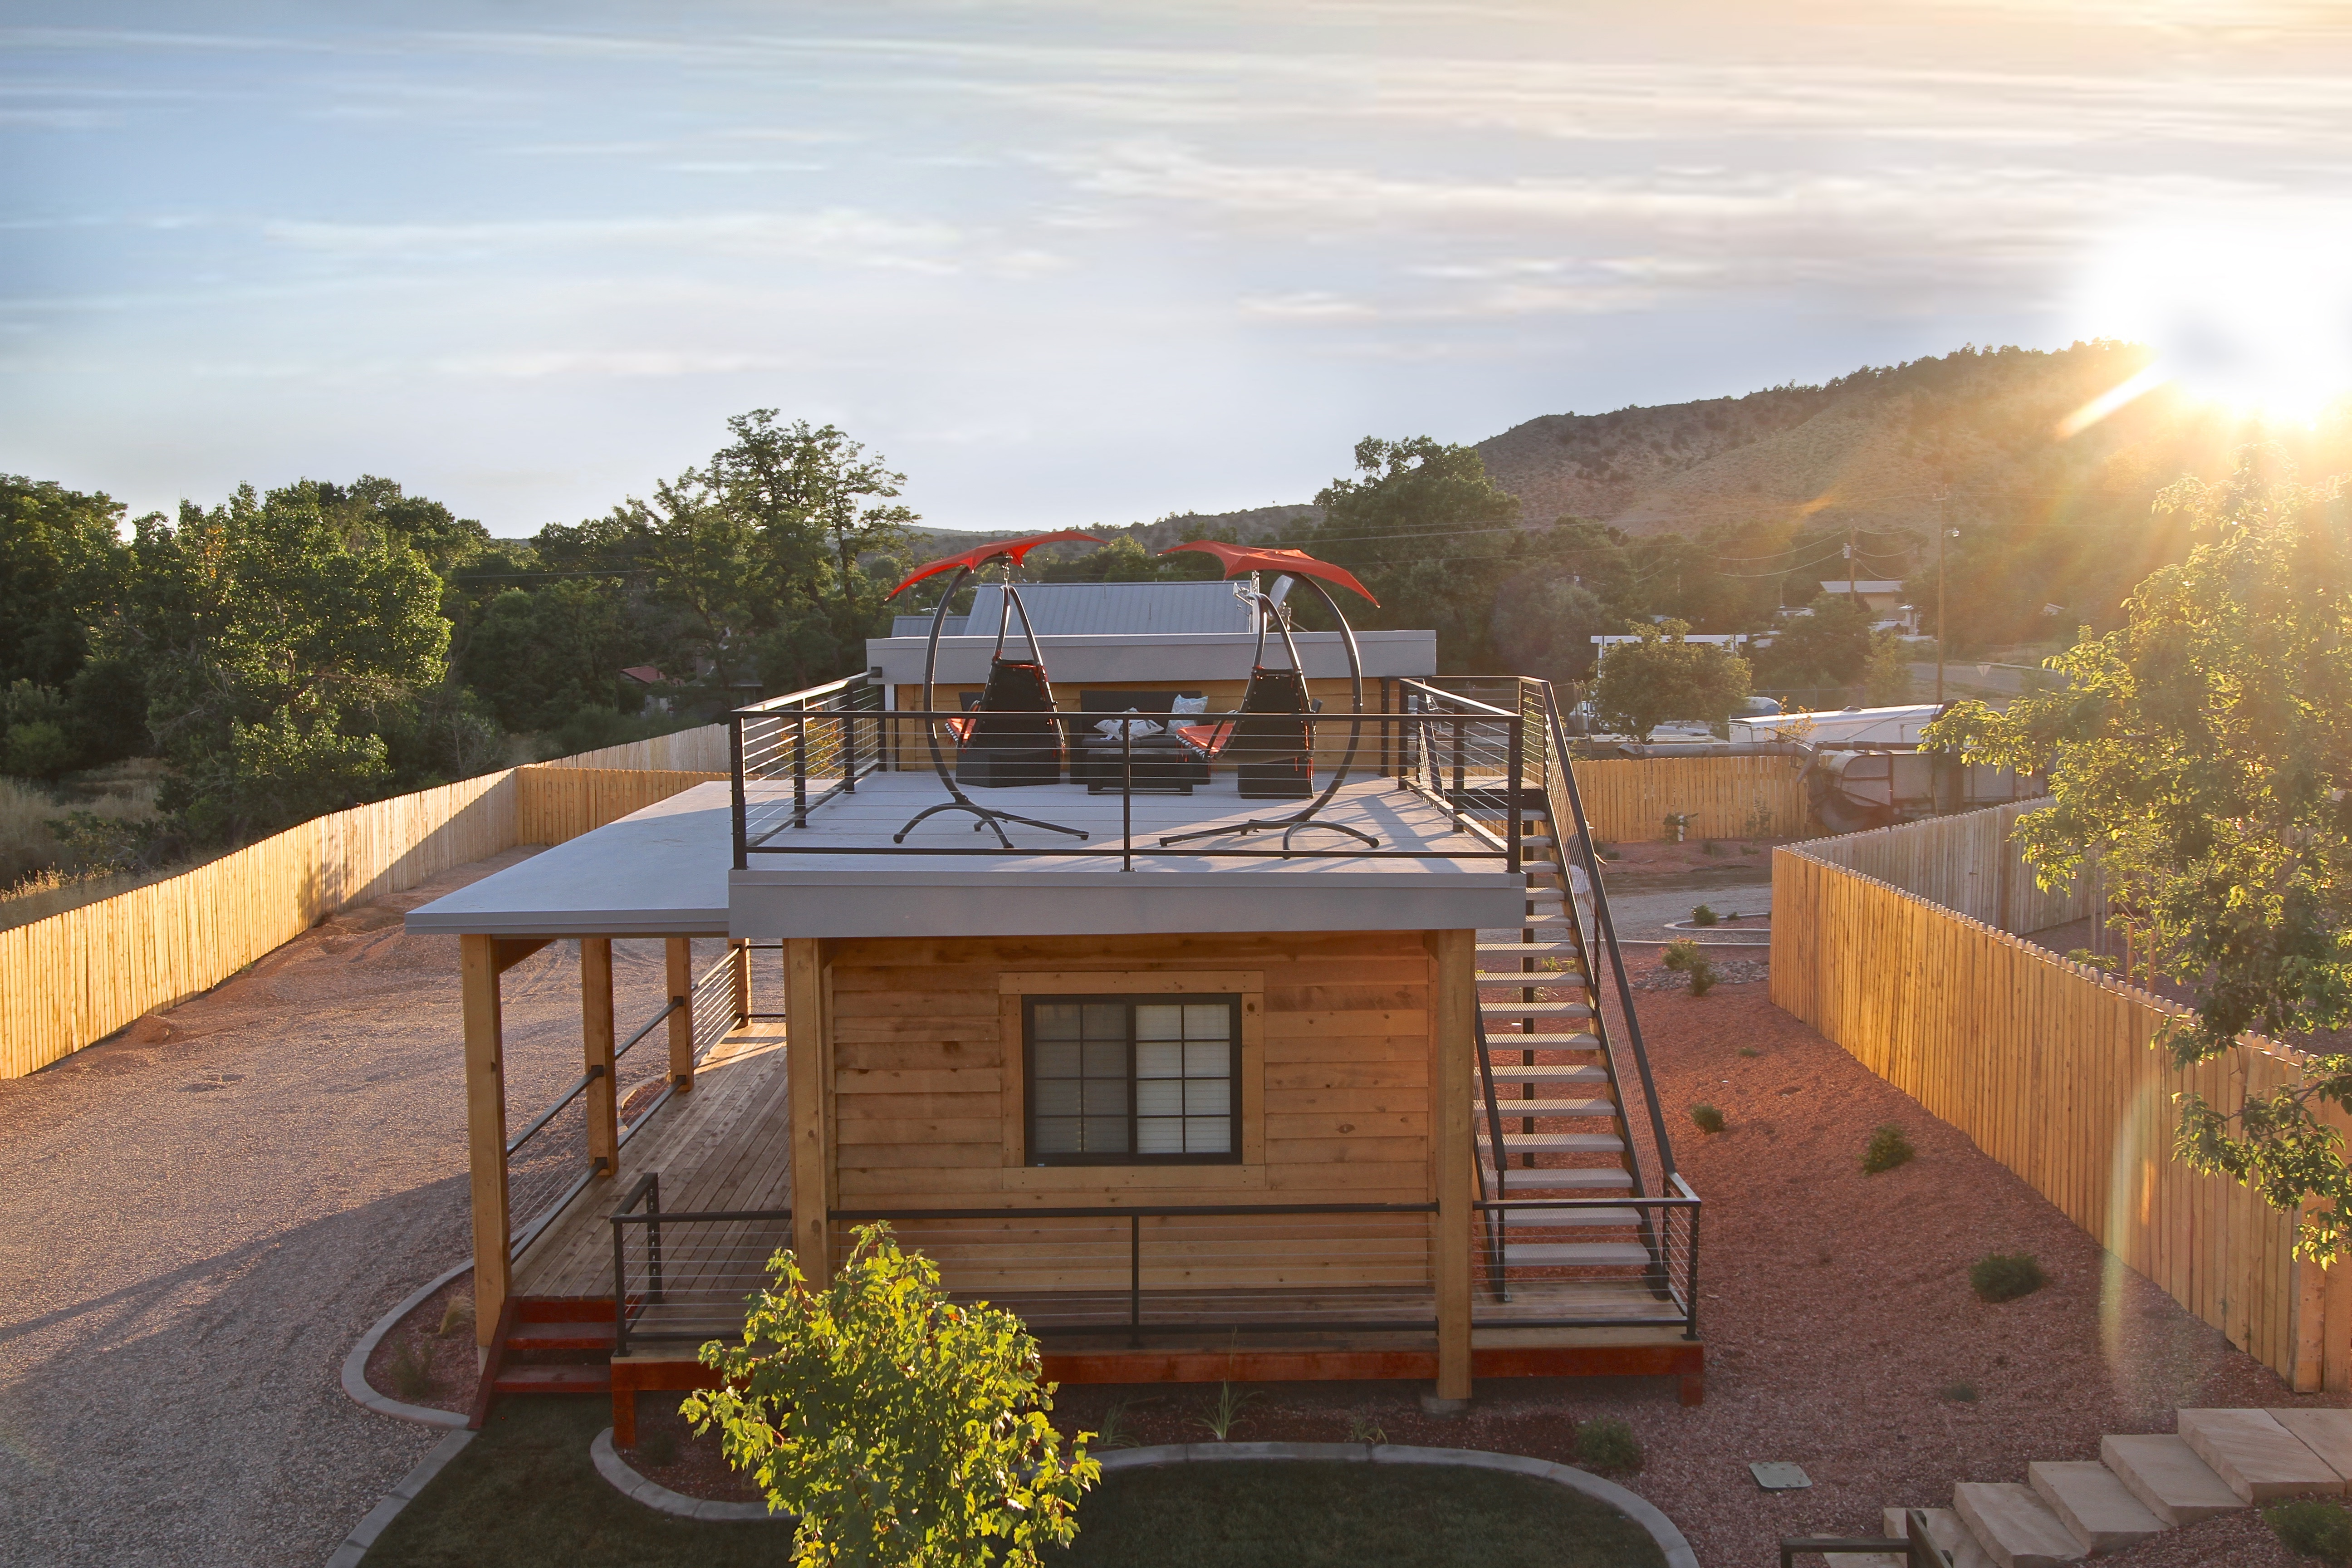 Tiny House 5-6 Rooftop